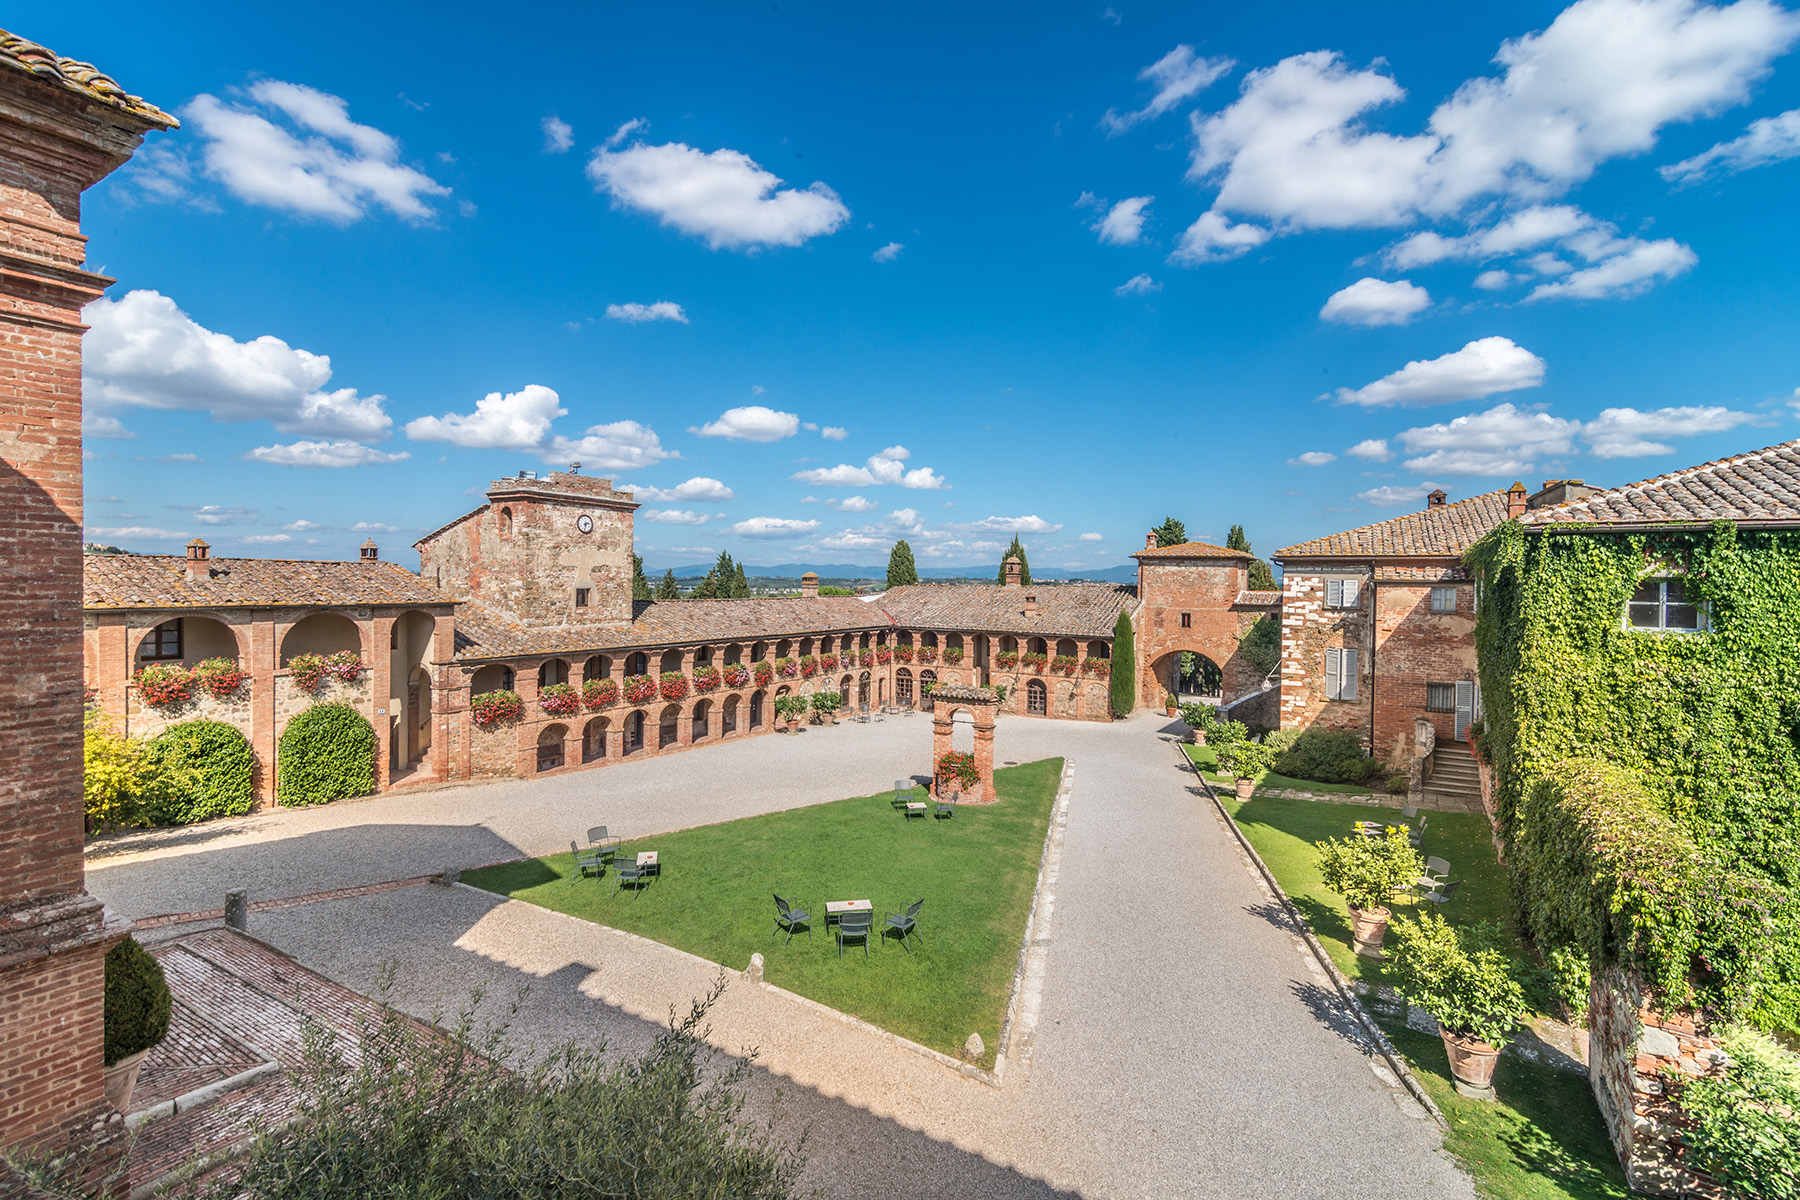 Single Family Home for Sale at Amazing Boutique Hotel near Siena Sinalunga Sinalunga, Siena 53100 Italy